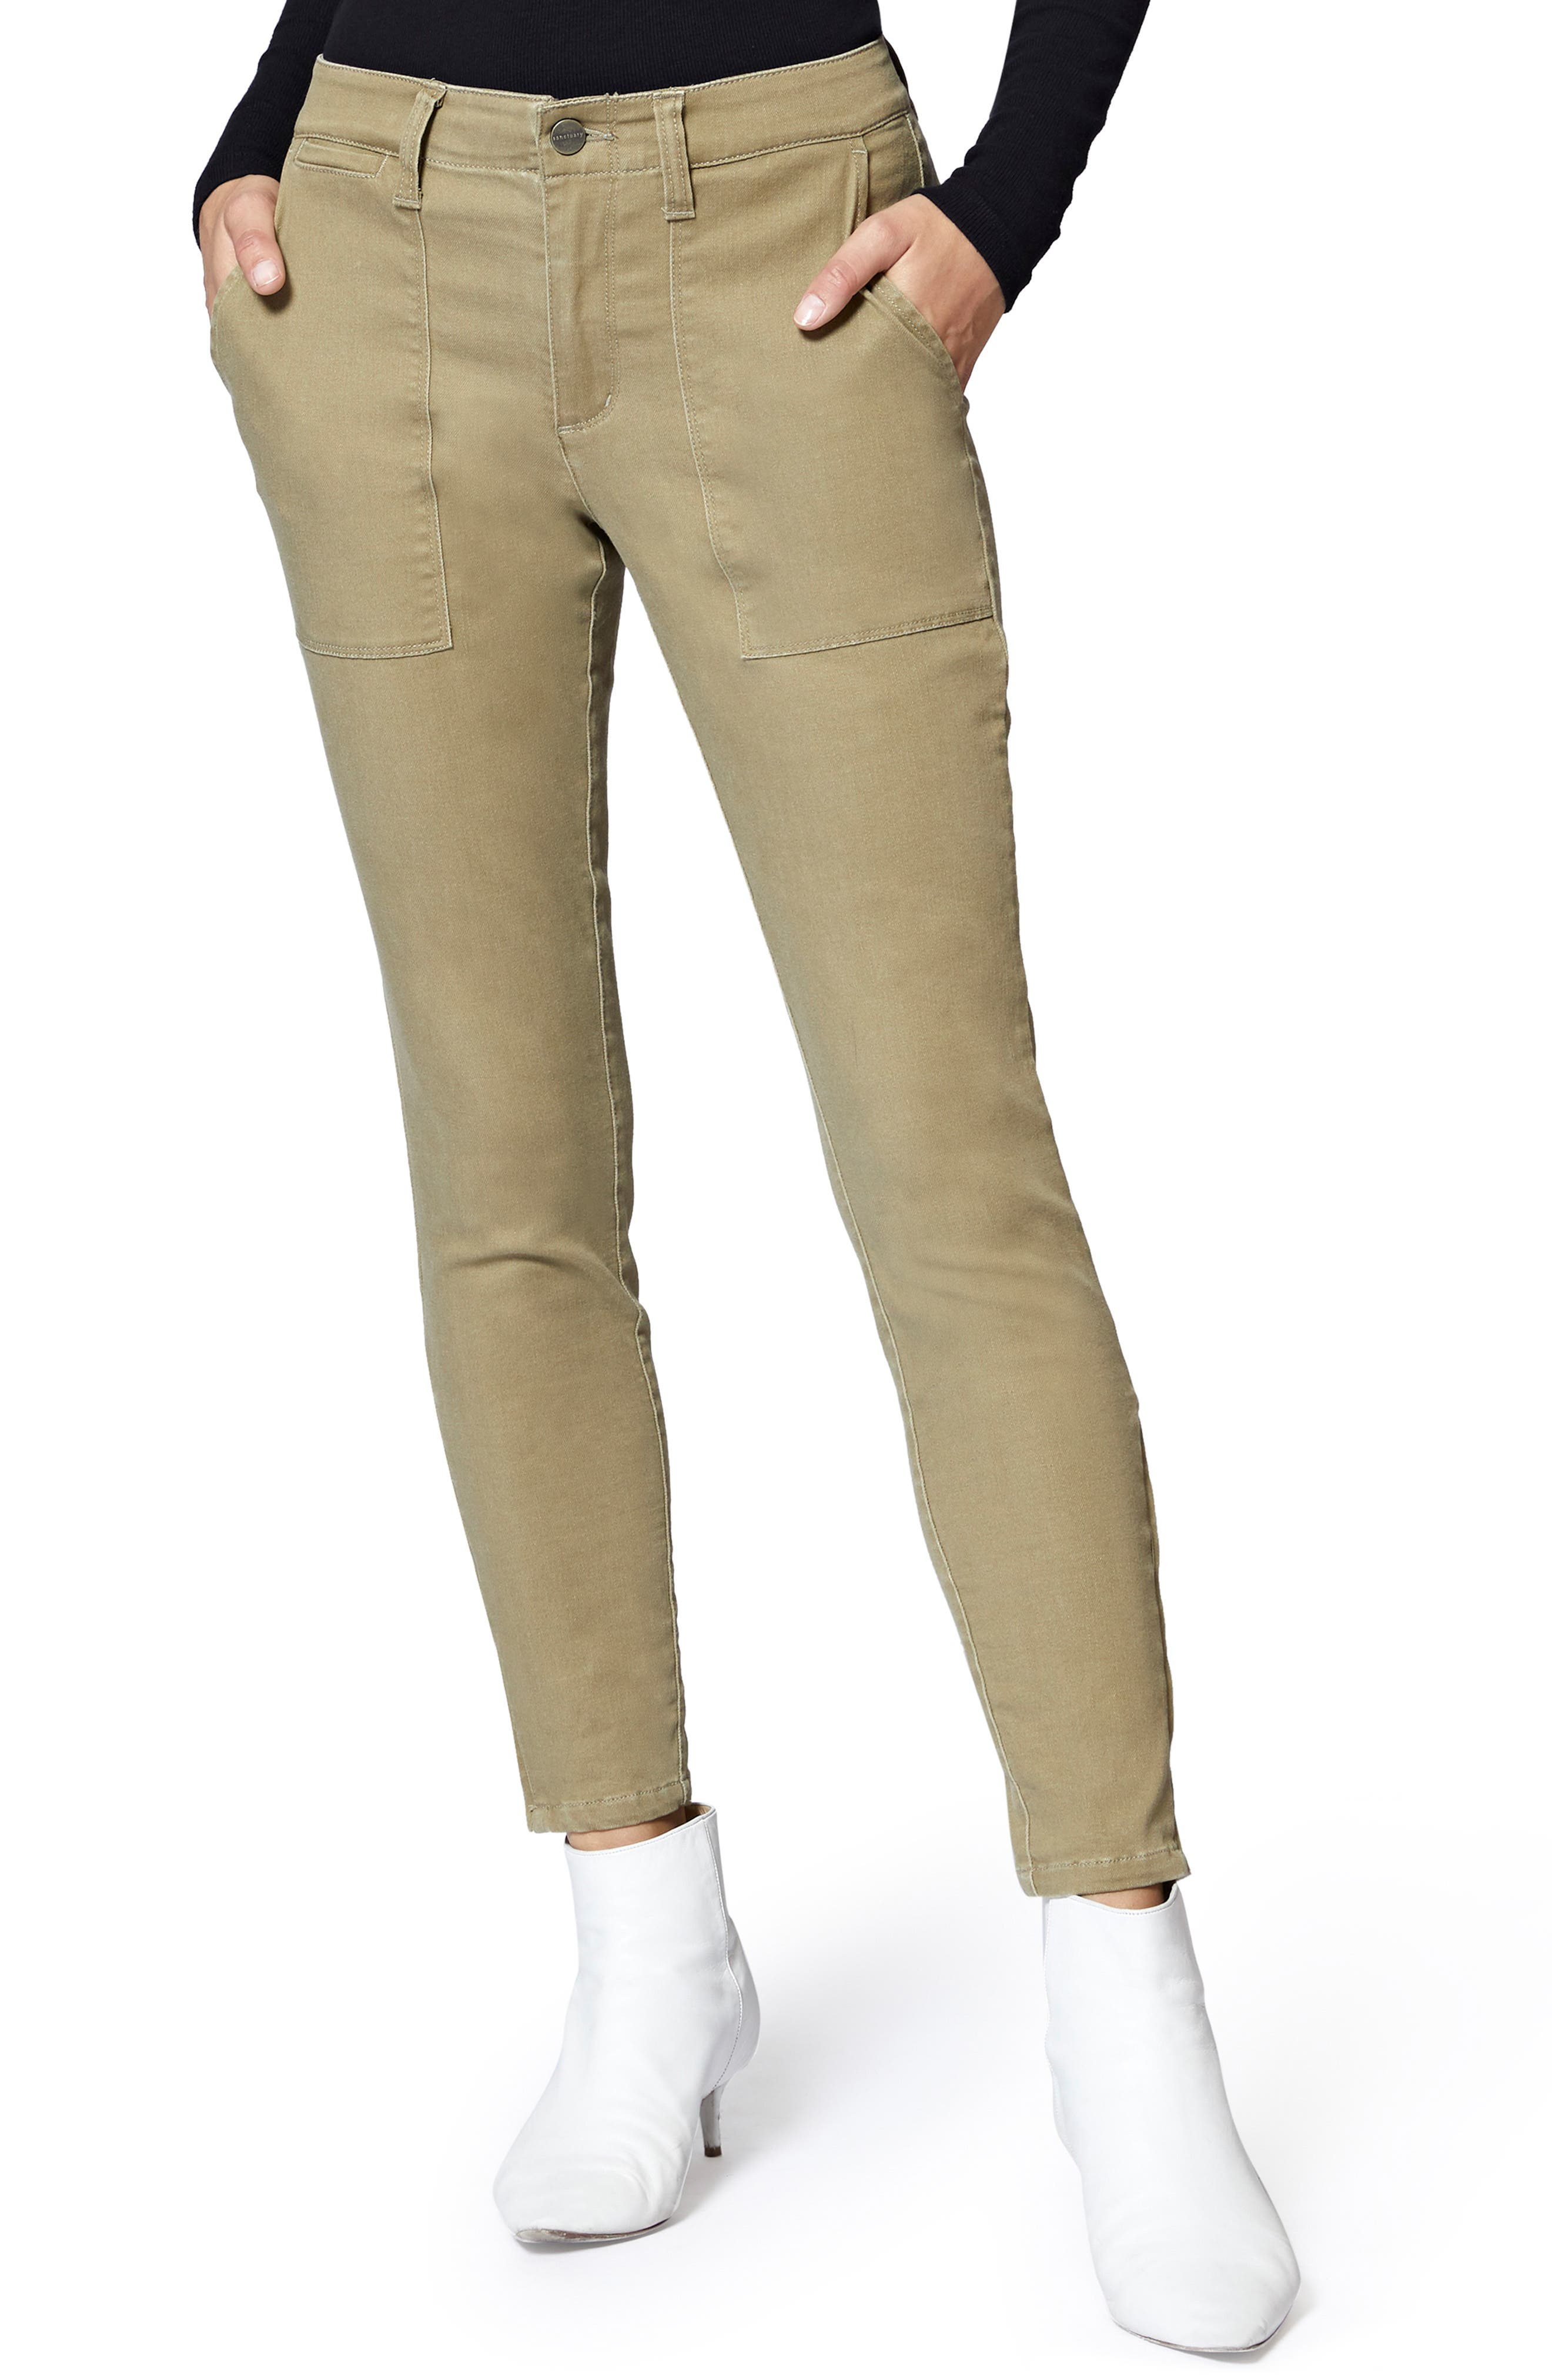 Fast Track Skinny Chino Pants,                         Main,                         color, PROSPERITY GREEN